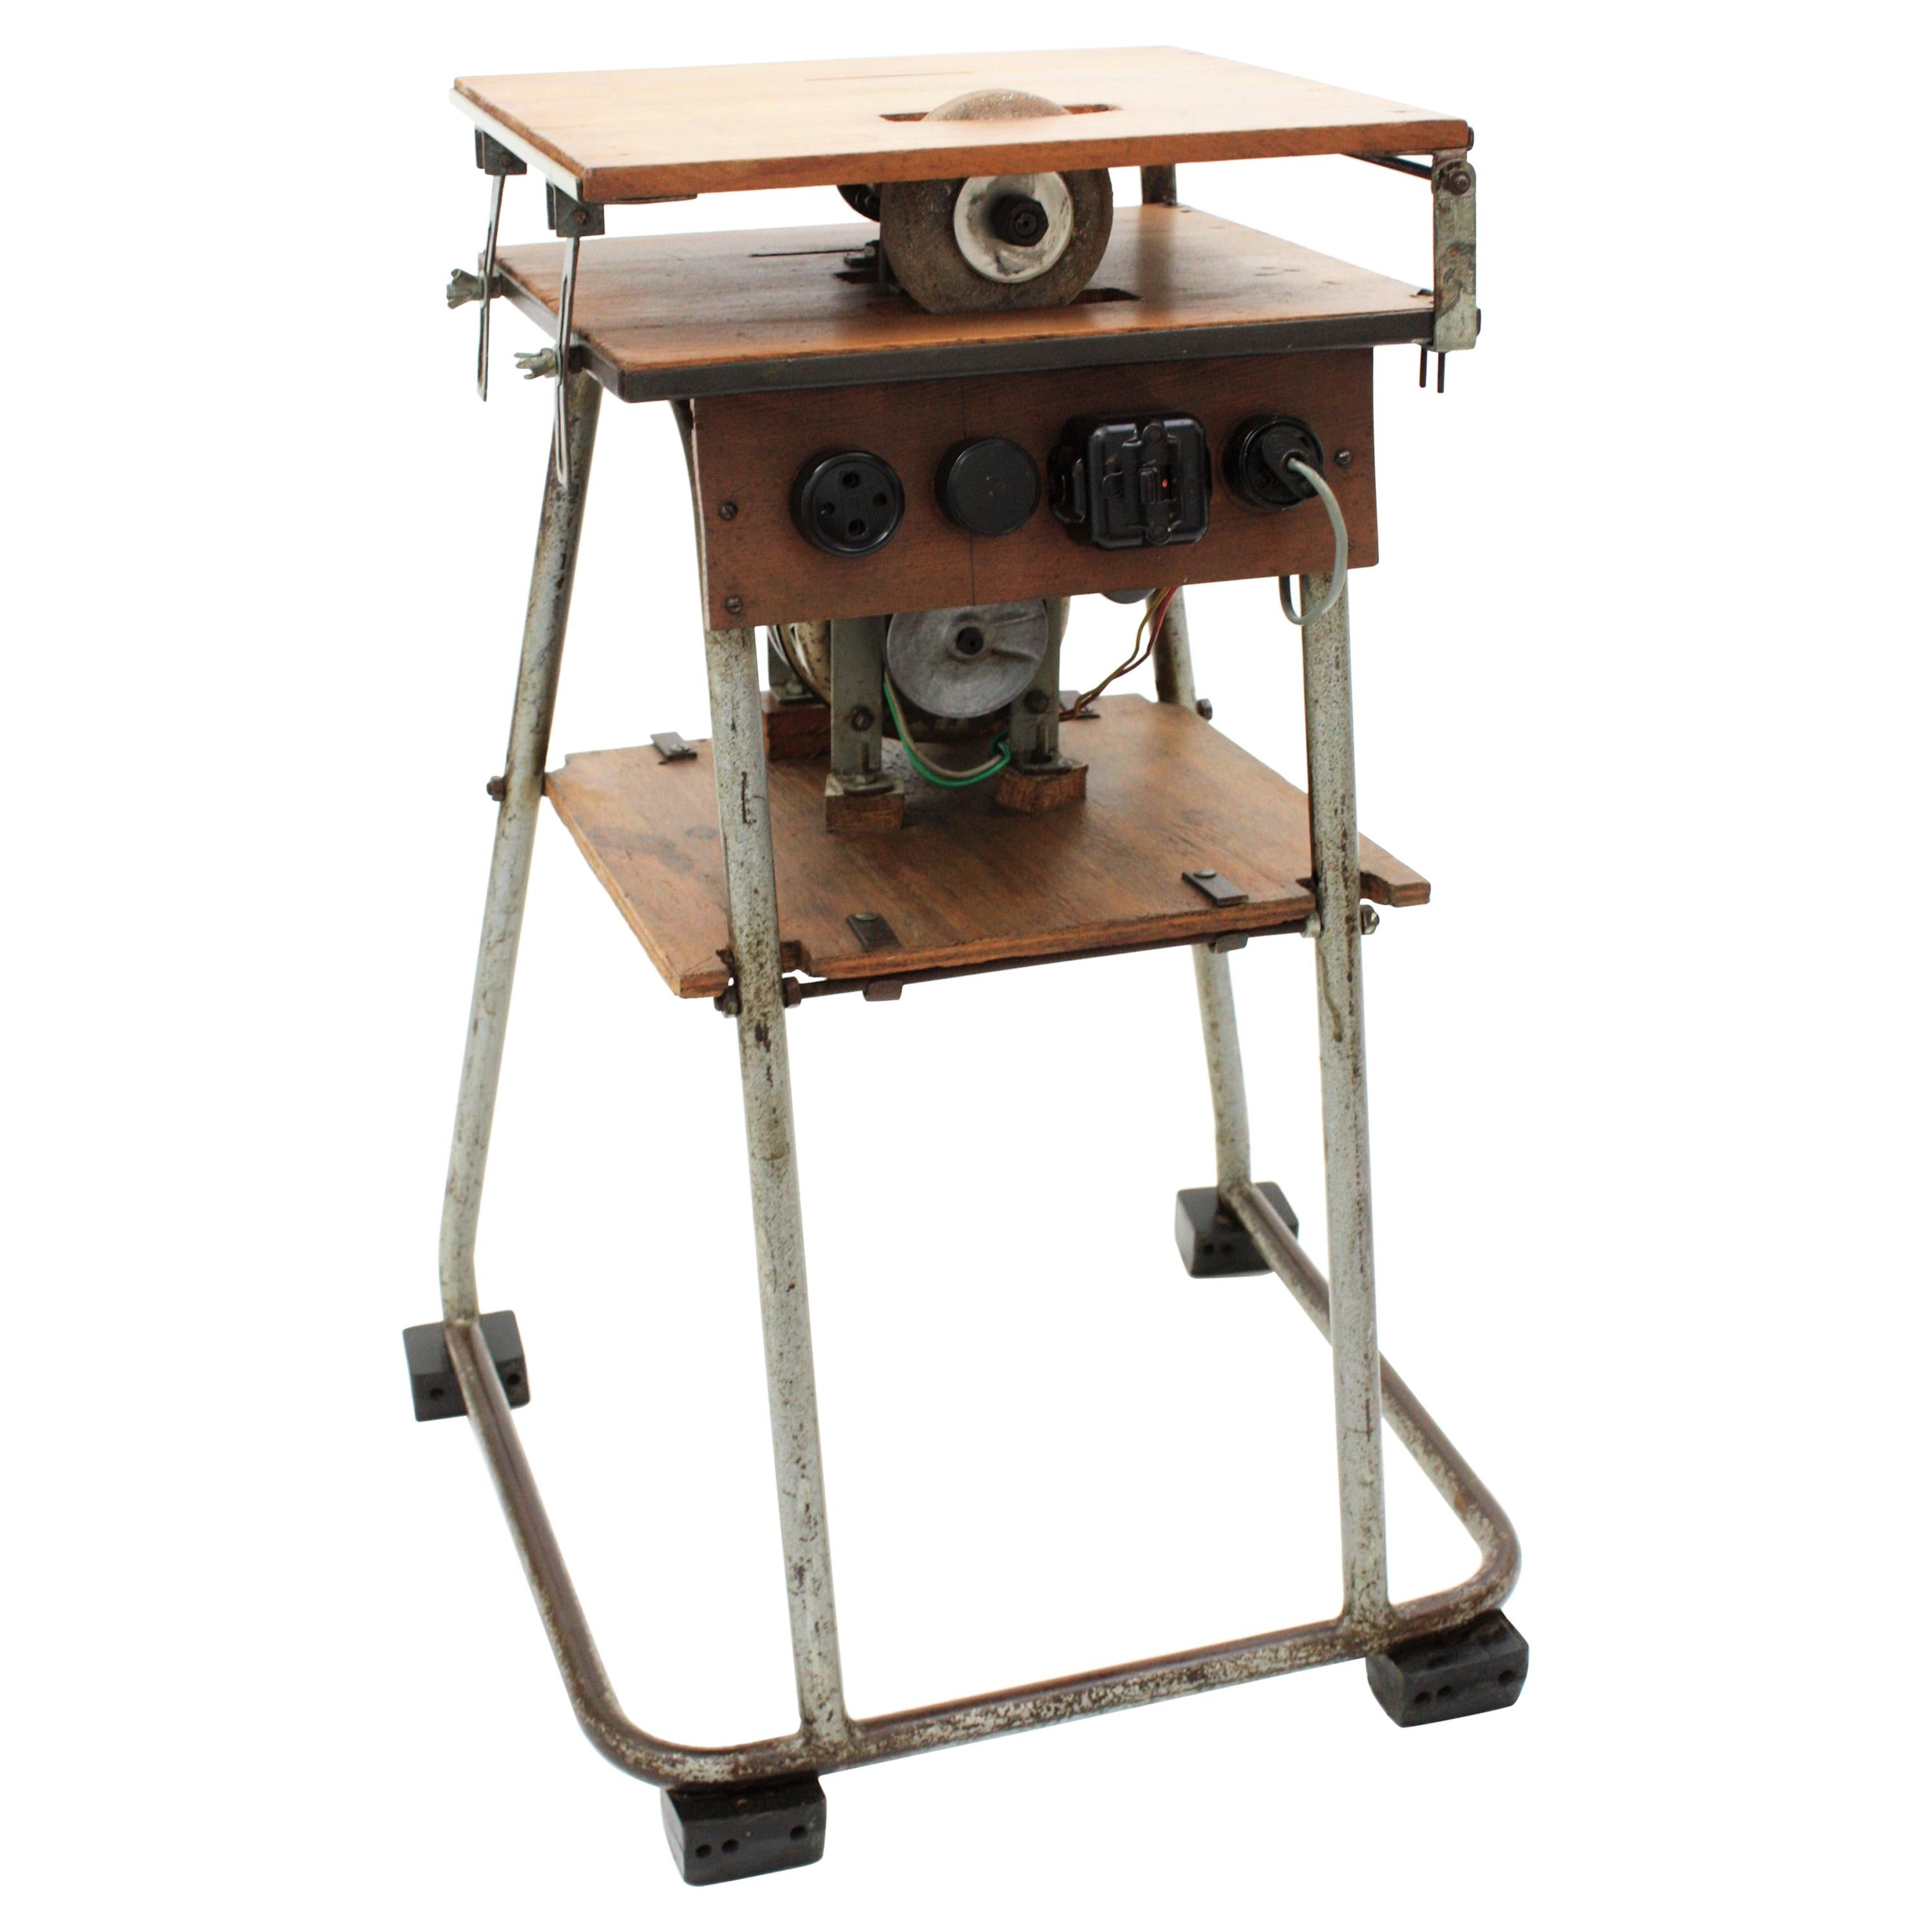 Craftsman Industrial Table Saw as Side Table, Iron and Wood